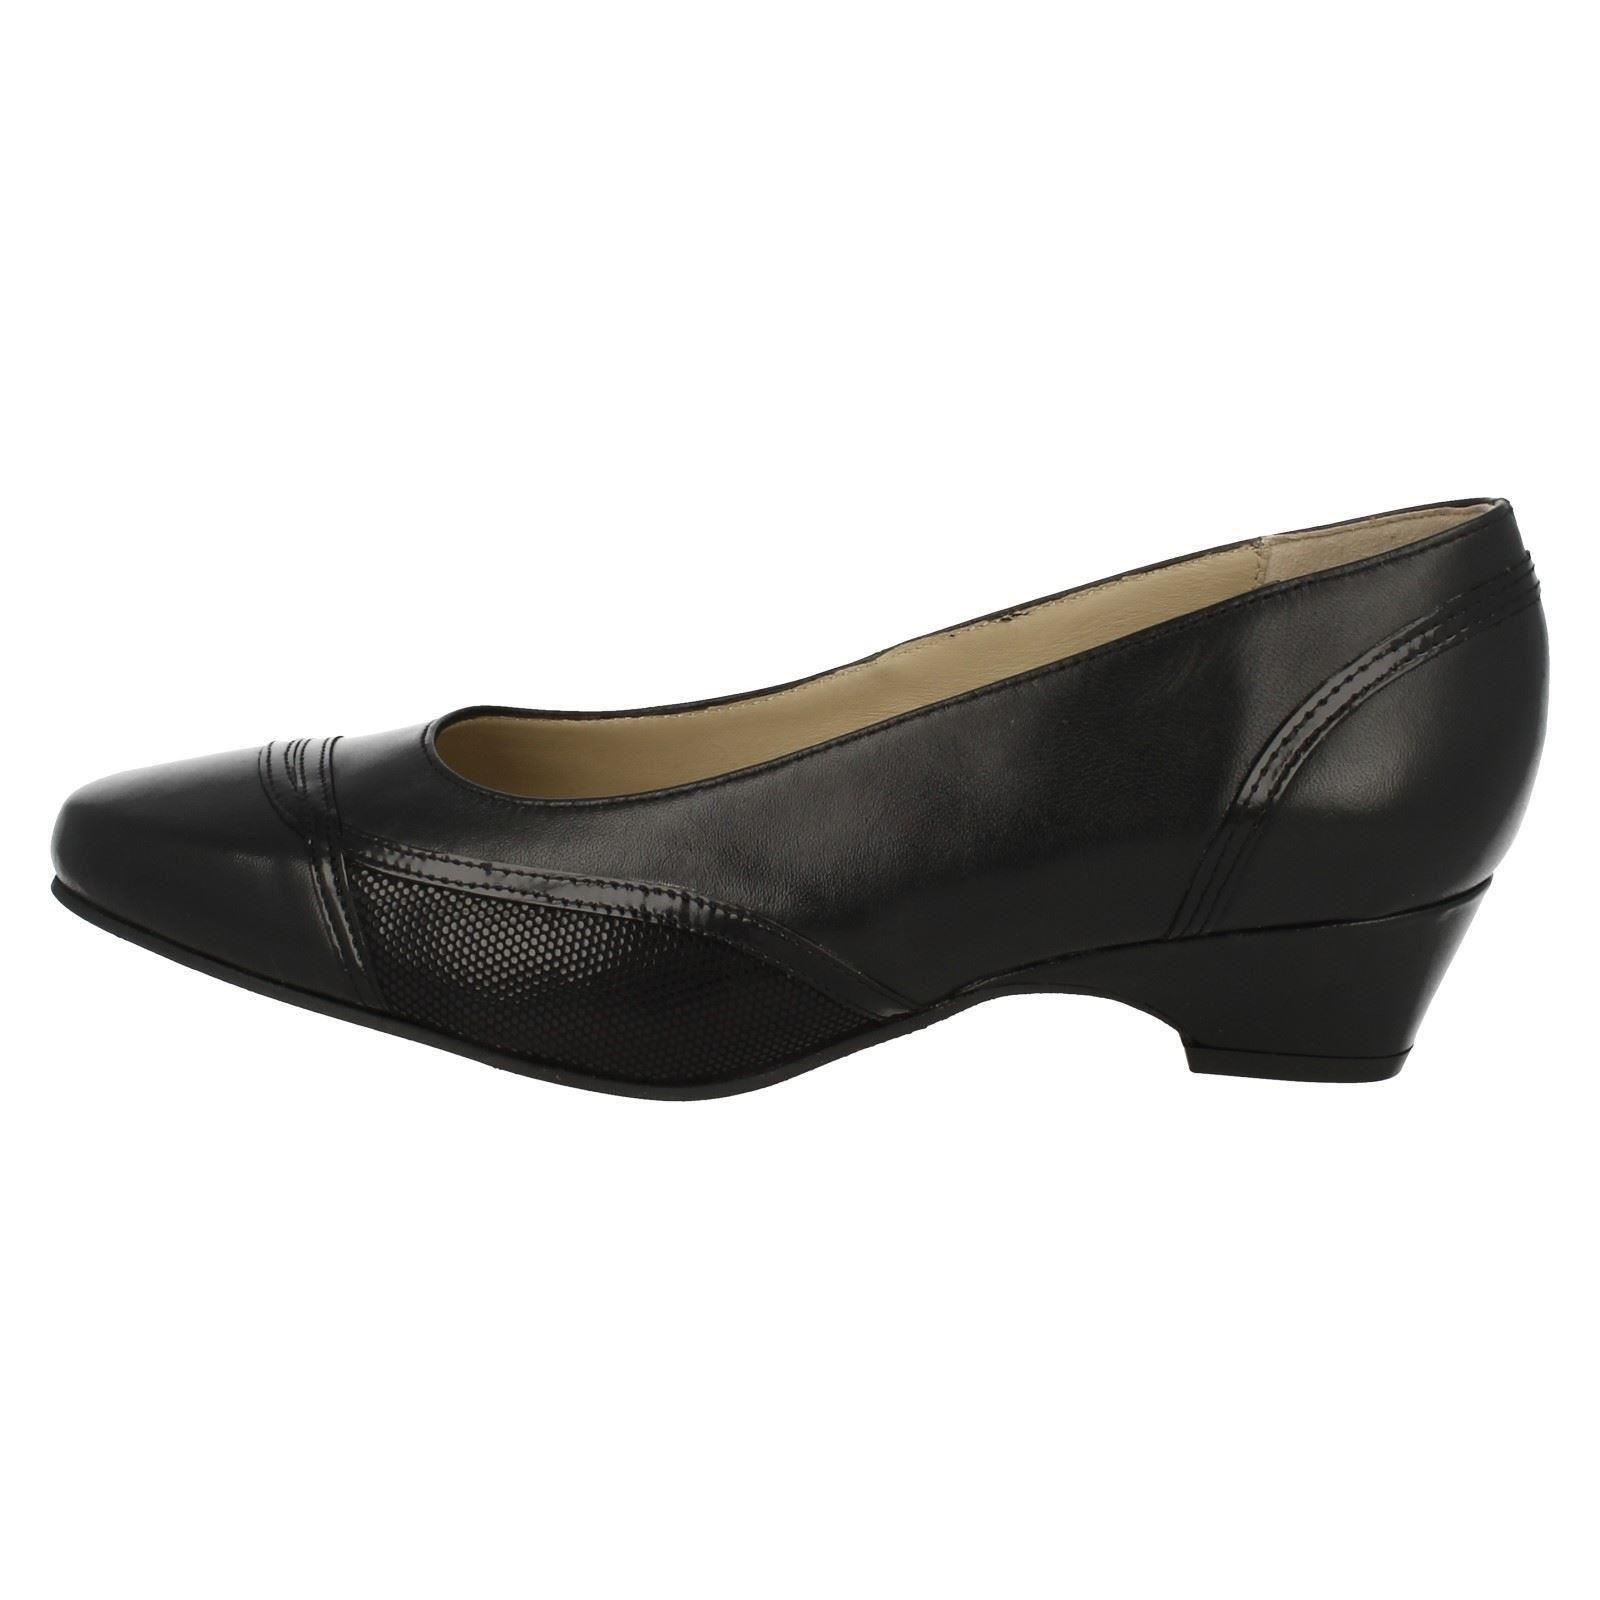 Mujer Equity Corte Formales Ancho zapatos  Formales Corte 'Pearl ' aef685